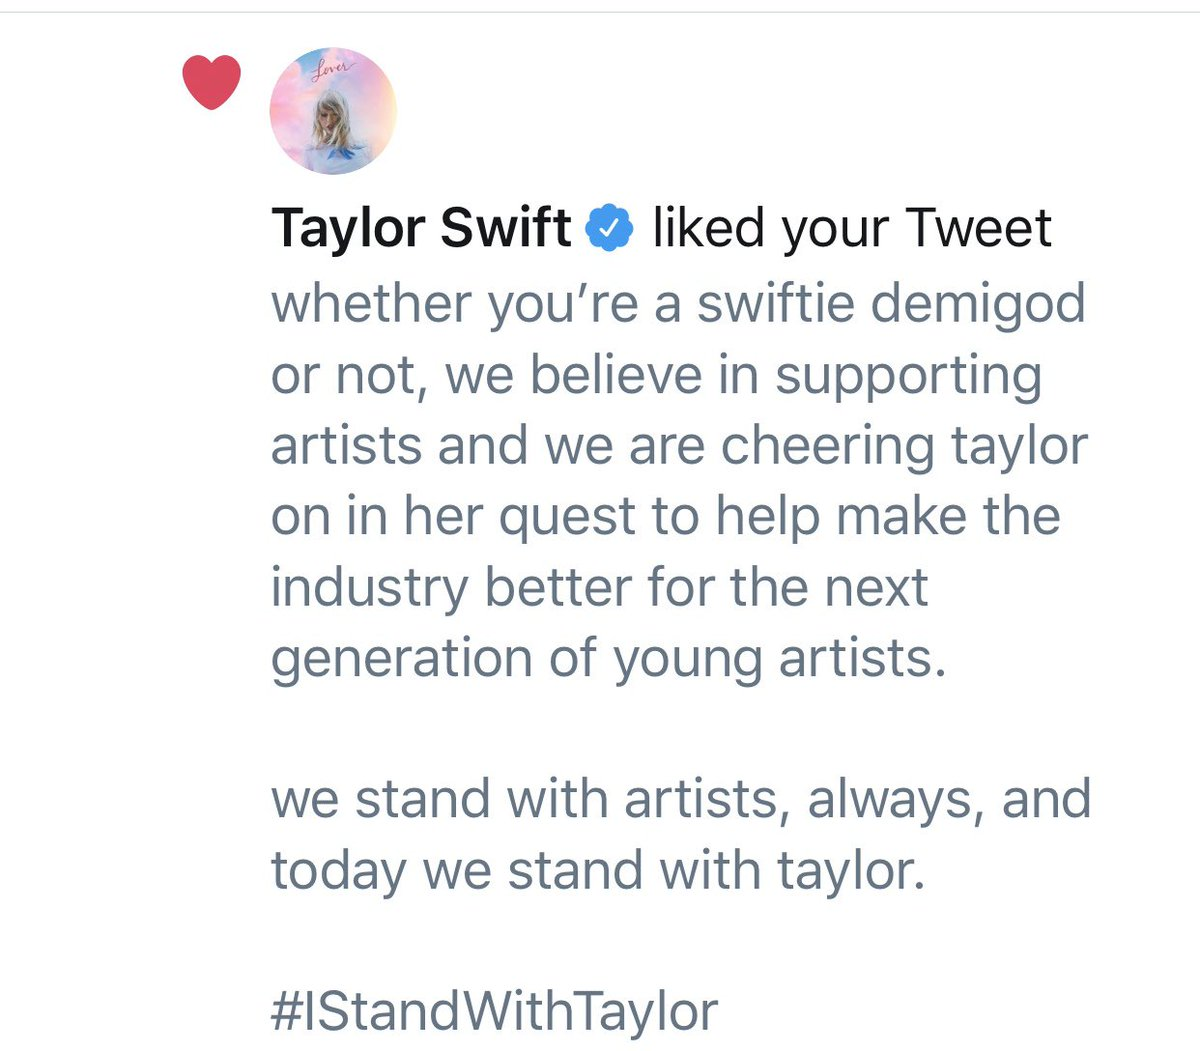 stay cool, demigods, stay cool. #IStandWithTaylor  @taylorswift13 you have an open invitation to camp half-blood anytime you wish.  https:// twitter.com/ltmusical/stat us/1195158795208531968  … <br>http://pic.twitter.com/BLf1gUUunn